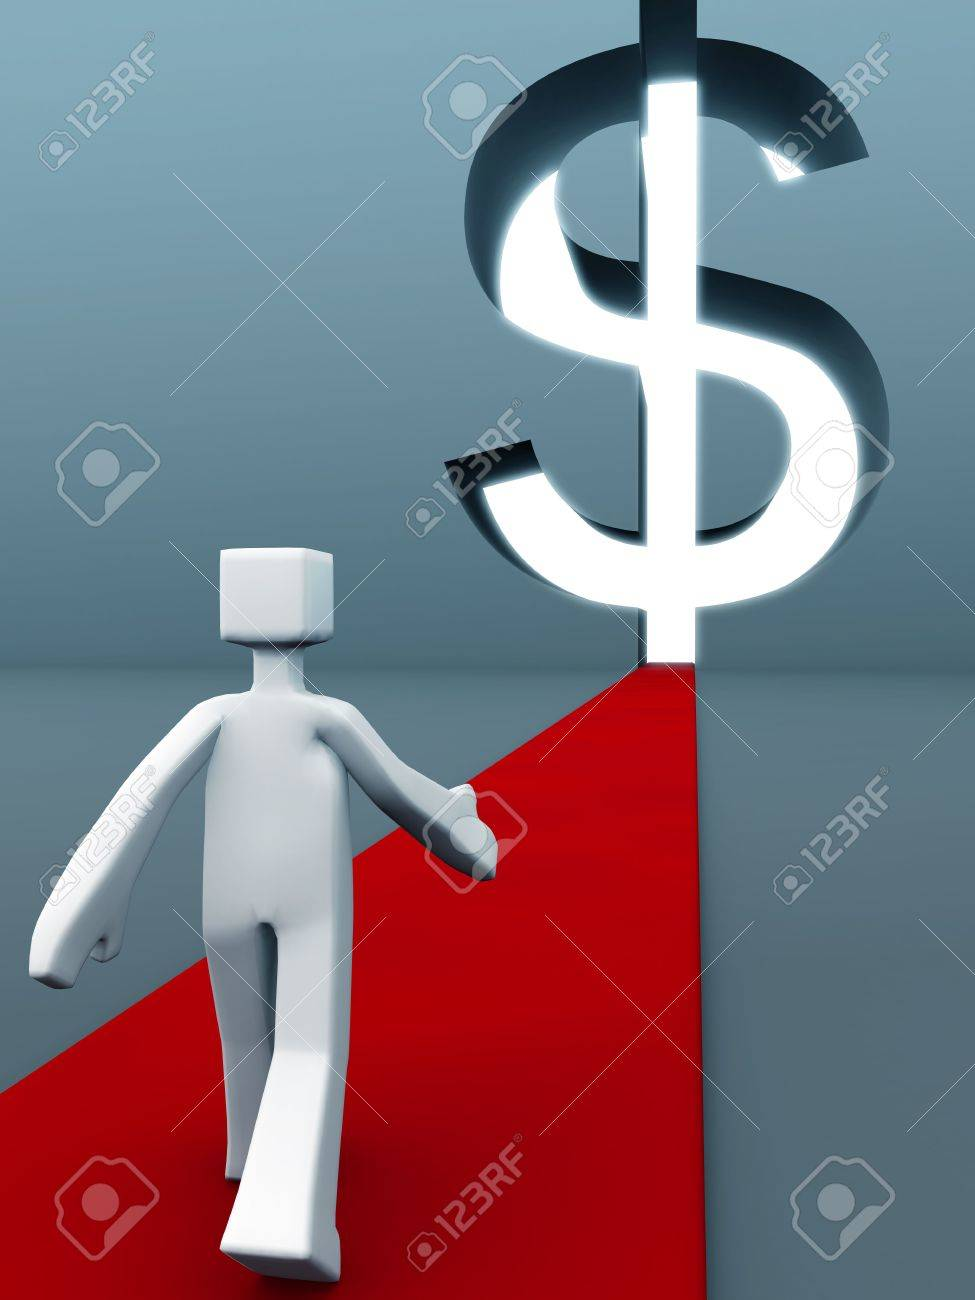 Man walking on red carpet towards the dollar sign door success of wealth concept 3d illustration Stock Illustration - 5741724